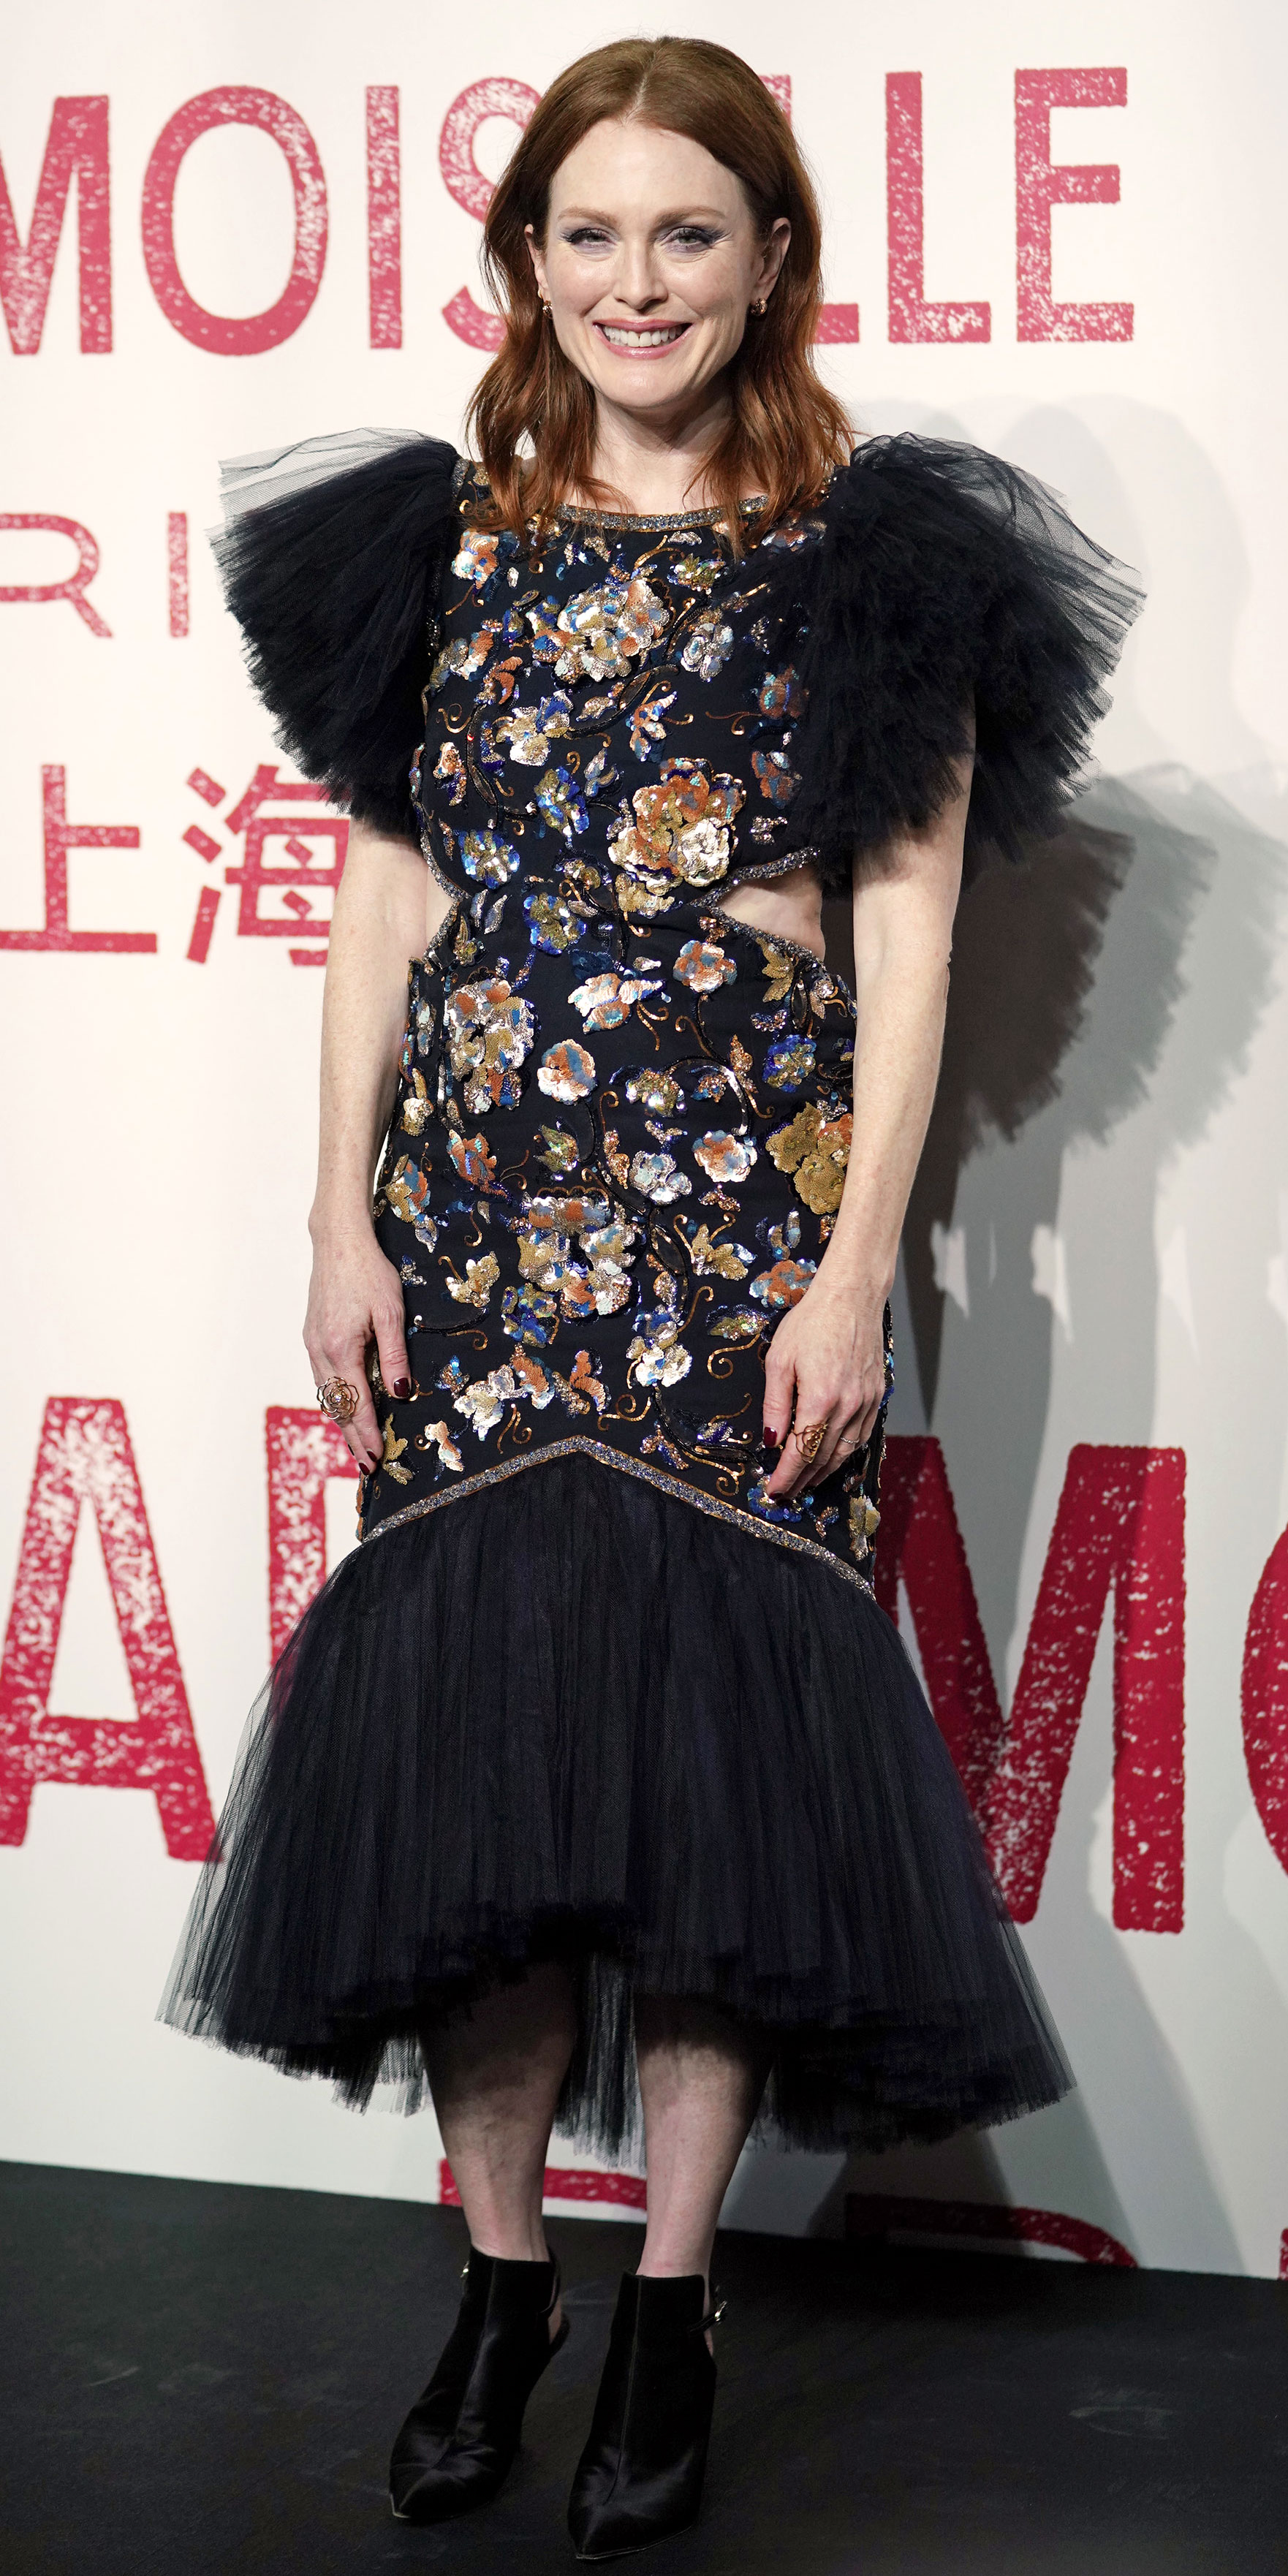 Mandatory Credit: Photo by Laomejin/ZCOOL HelloRF/REX/Shutterstock (10214159b) Julianne Moore Chanel Mademoiselle Privé exhibition, Shanghai, China - 18 Apr 2019